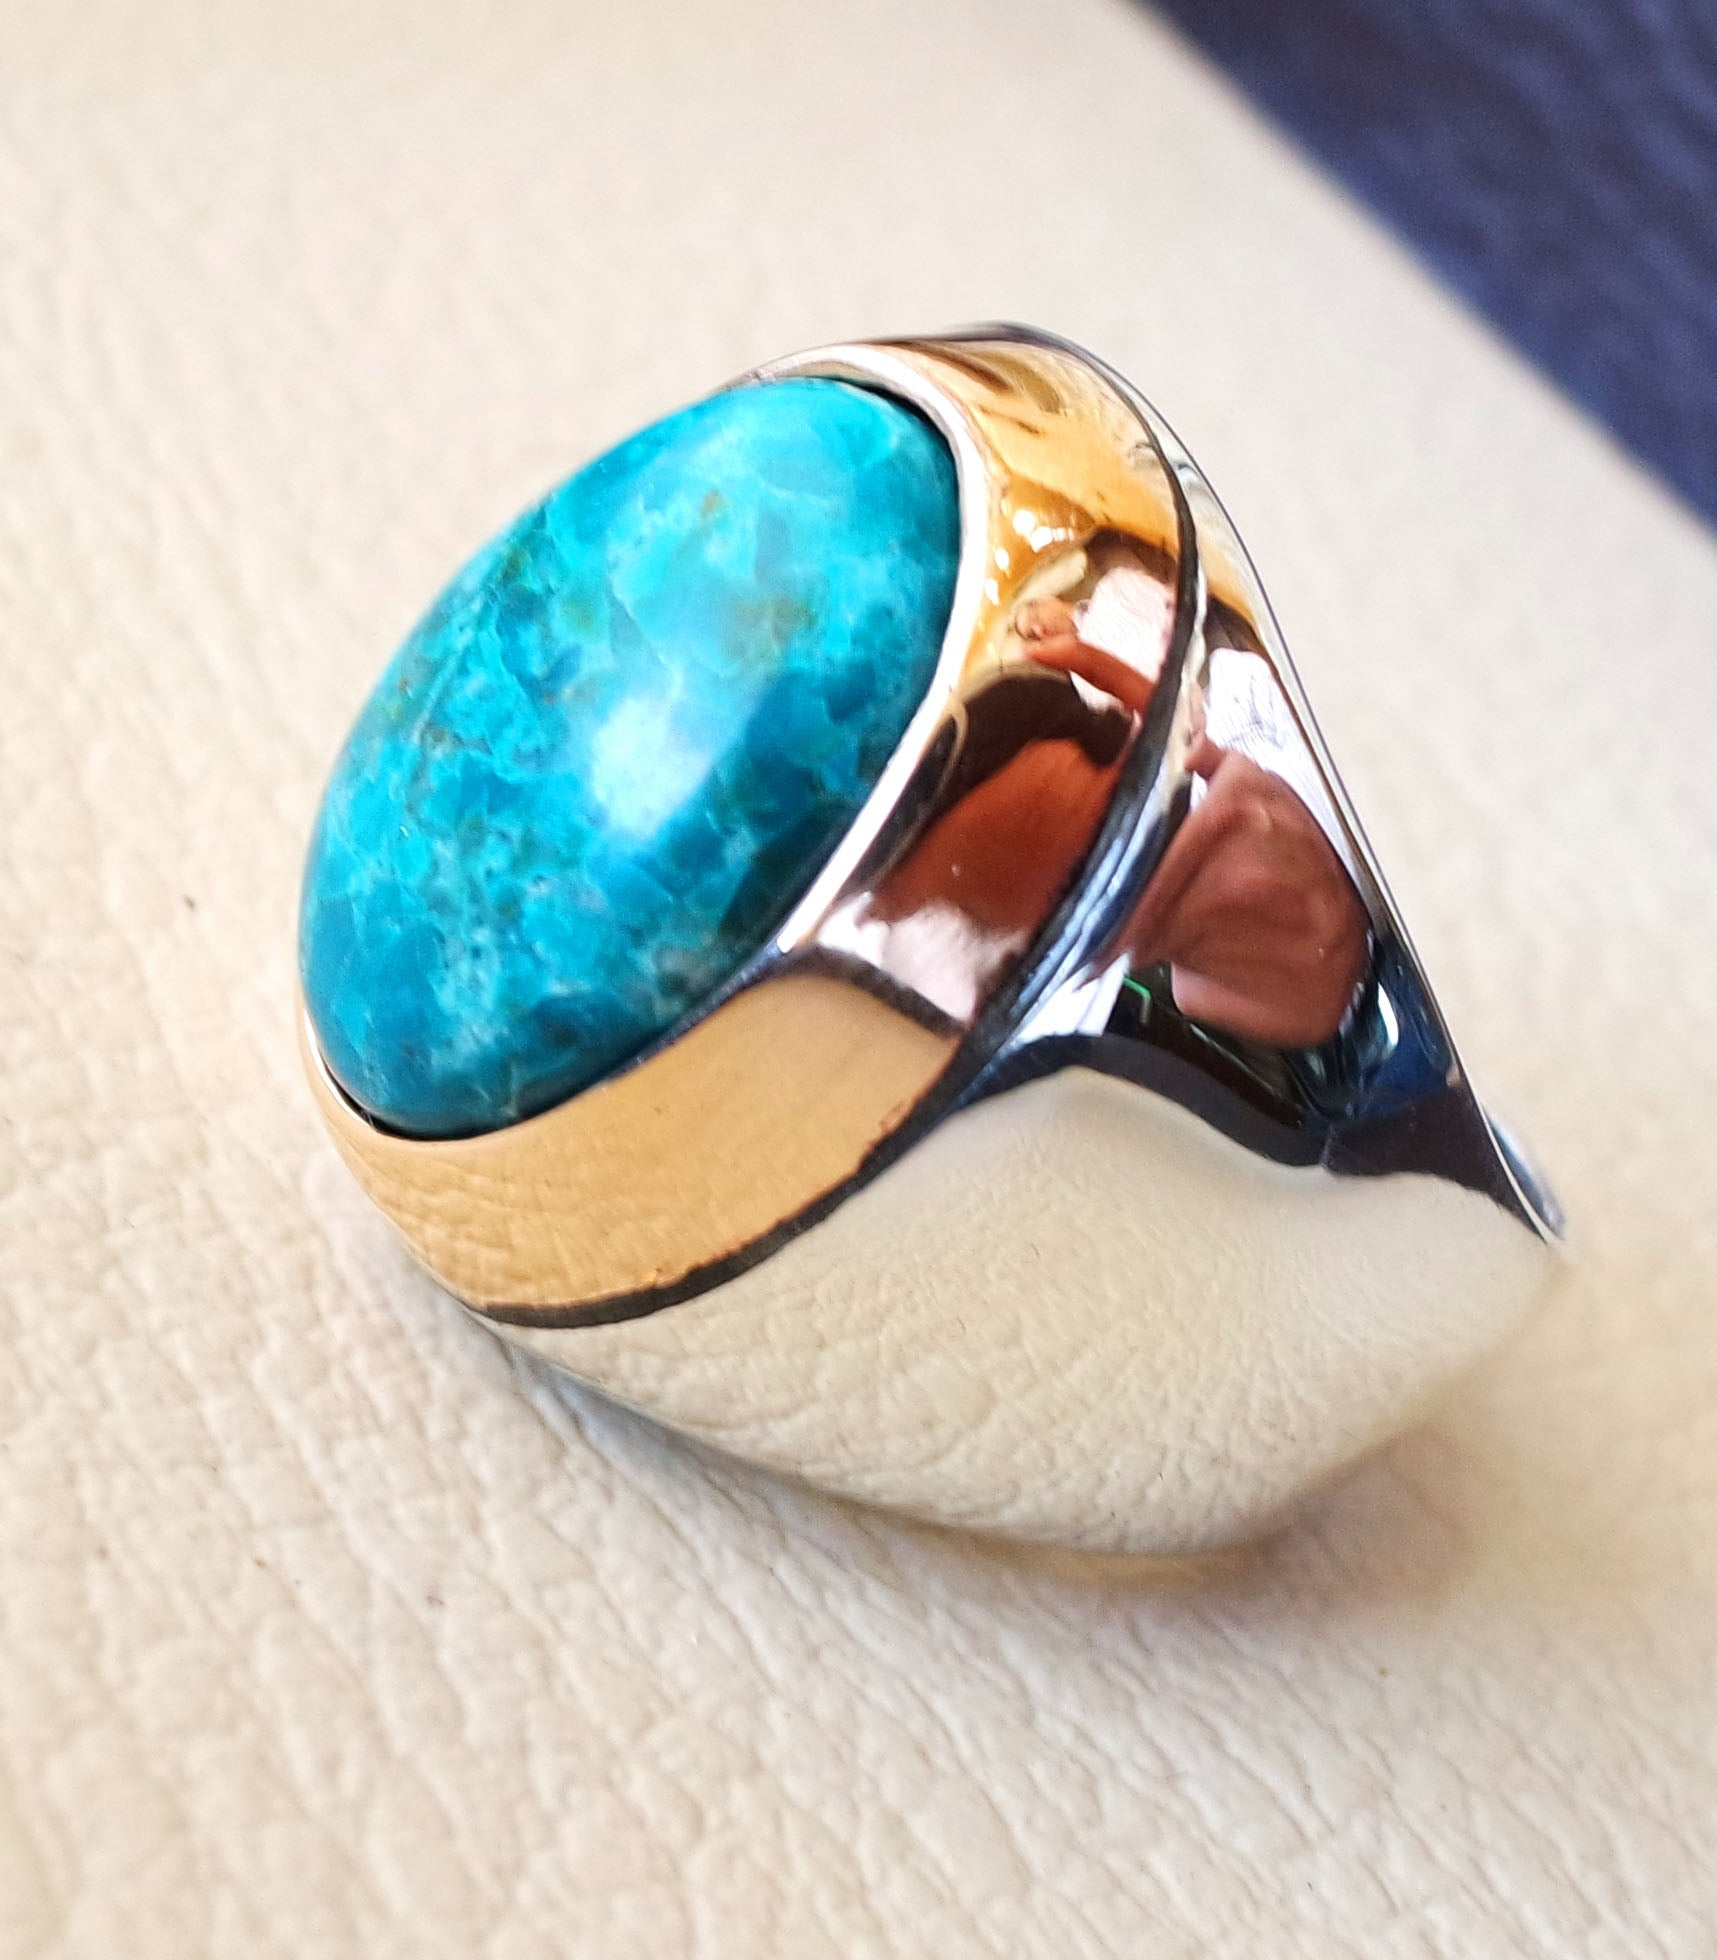 man ring chryscolla natural stone sterling silver 925 and bronze oval cabochon semi precious blue gem ottoman arabic style all sizes jewelry